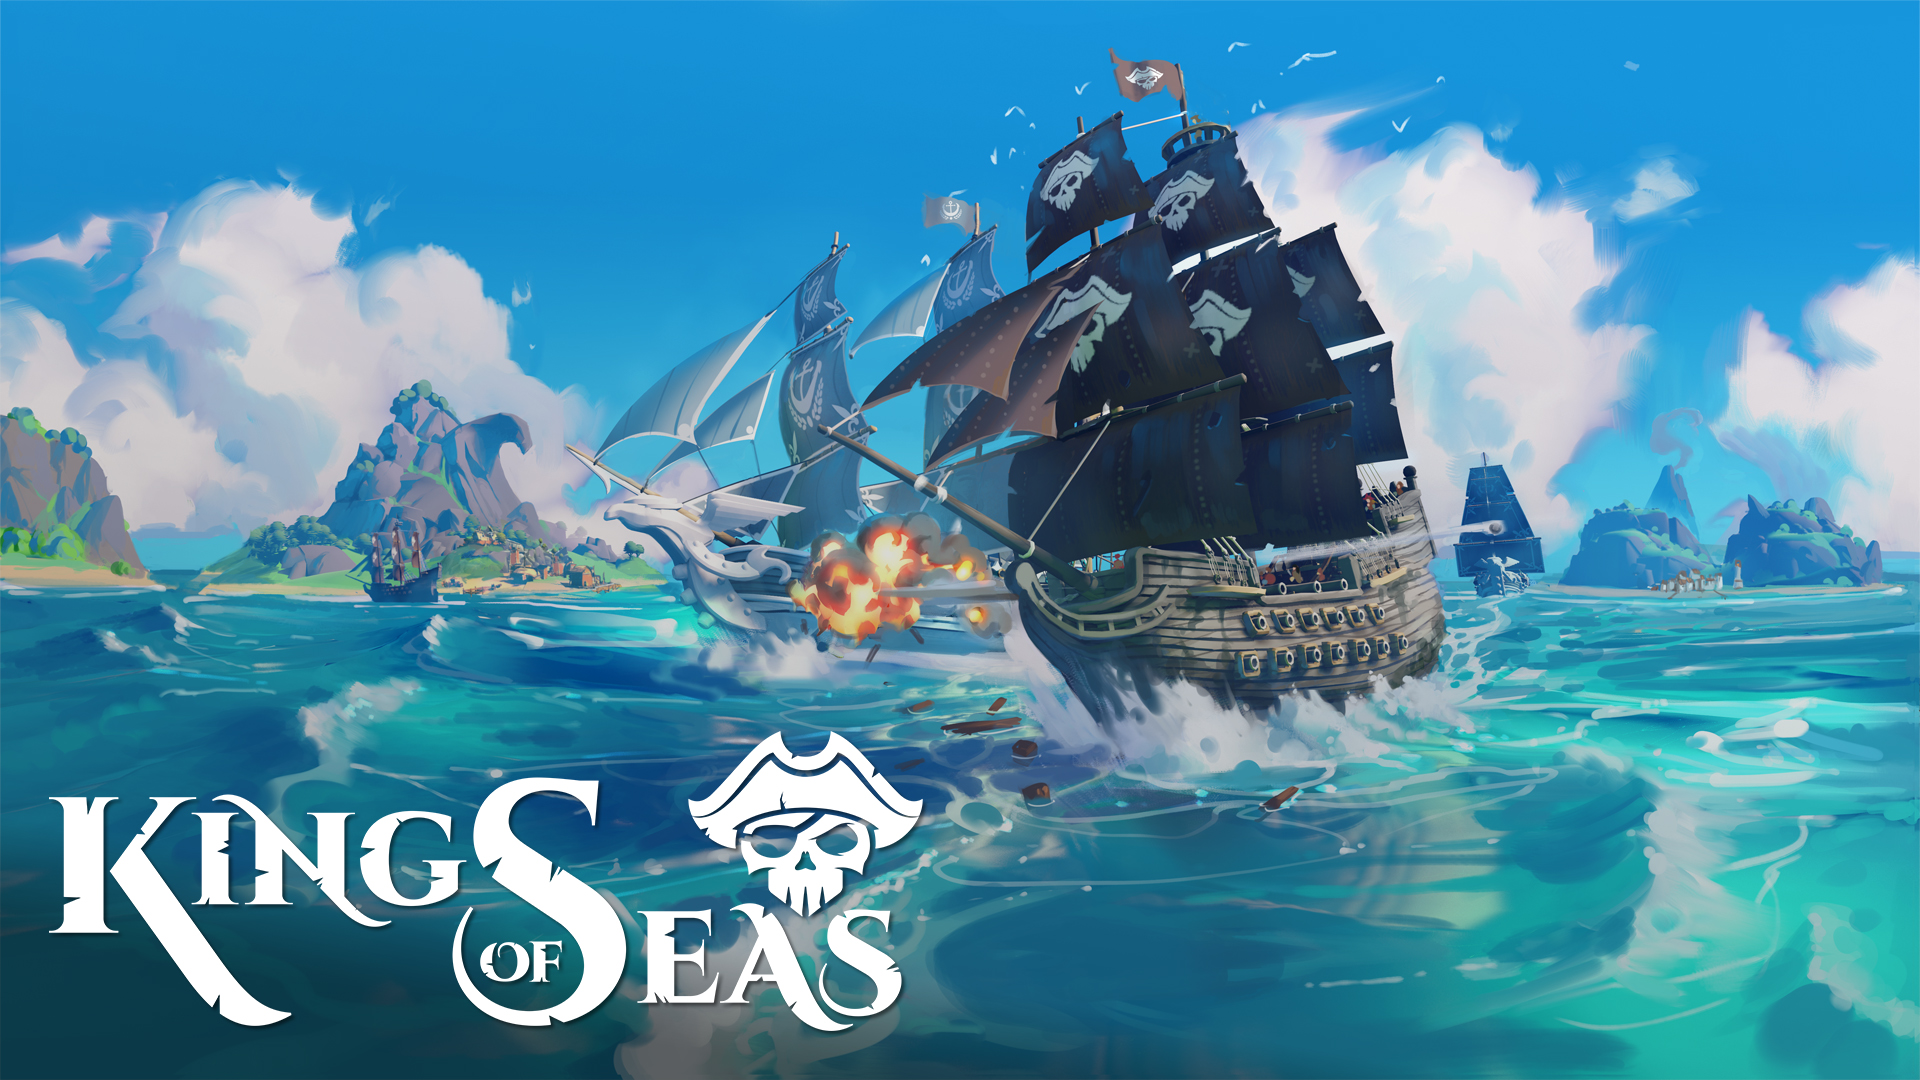 King of Seas logo and artwork showing a ship on the sea